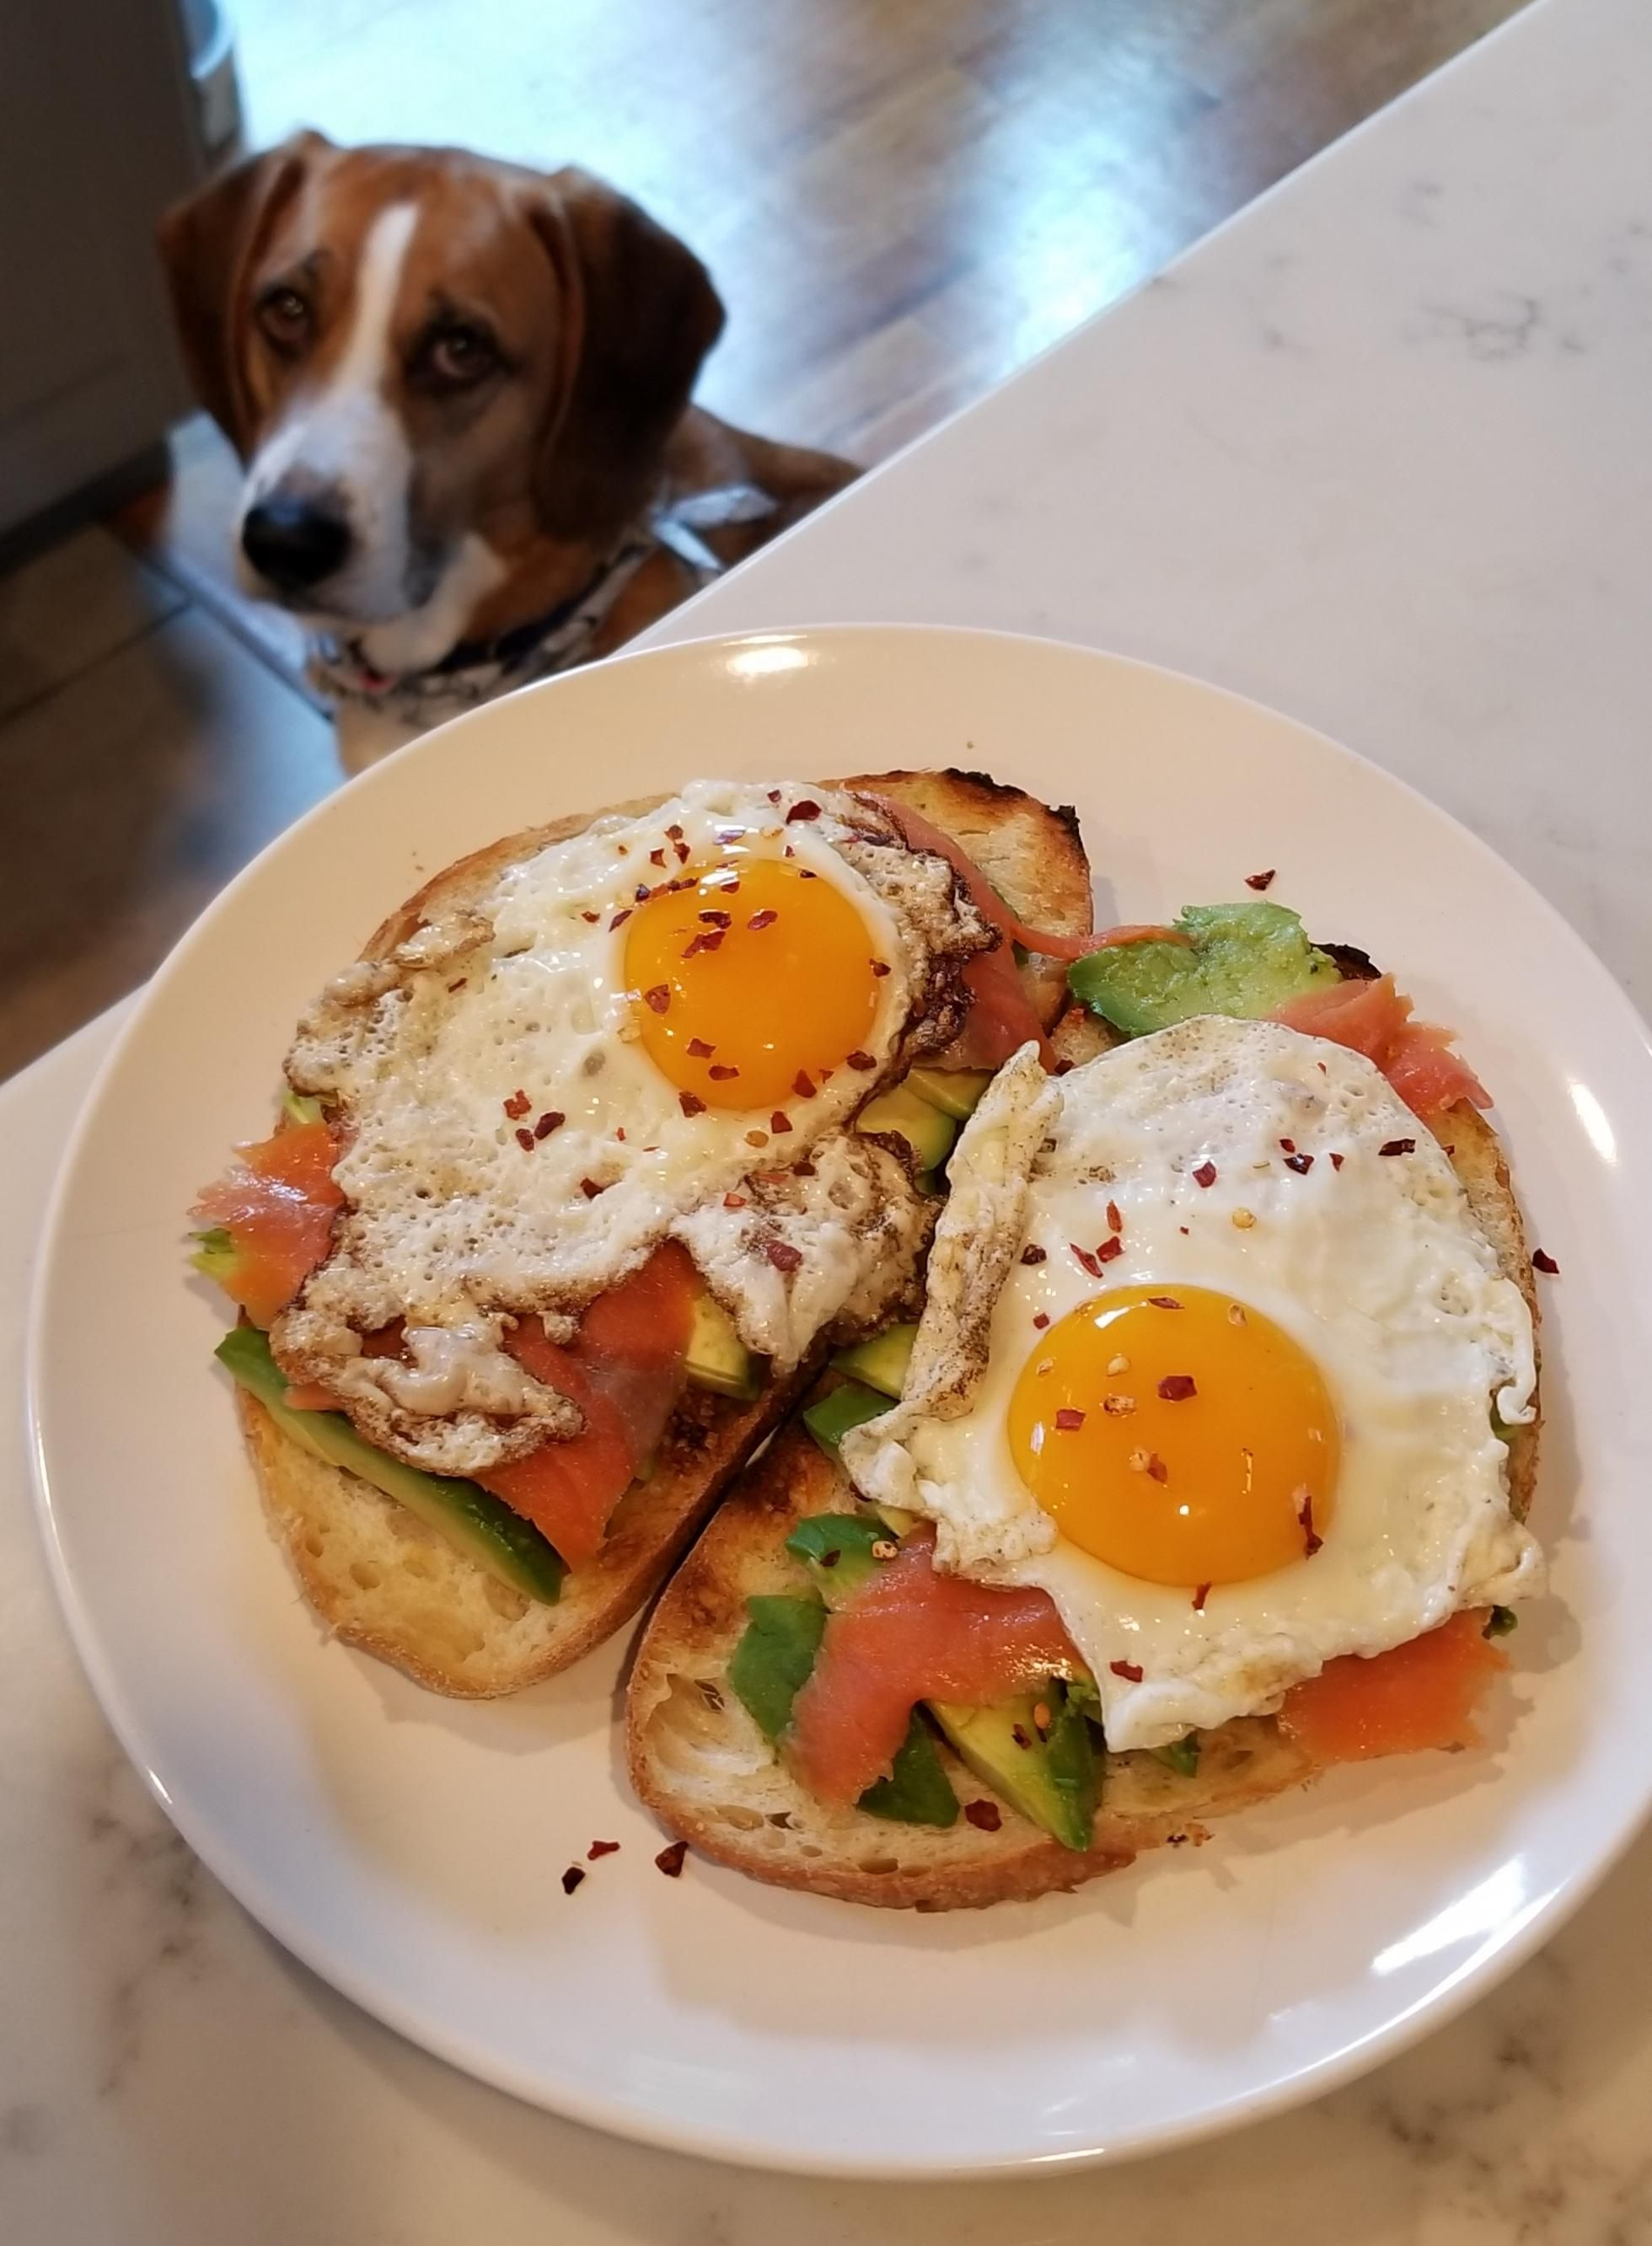 [HOMEMADE] Fried Eggs Over Avacado Toast Avacado toast, Food